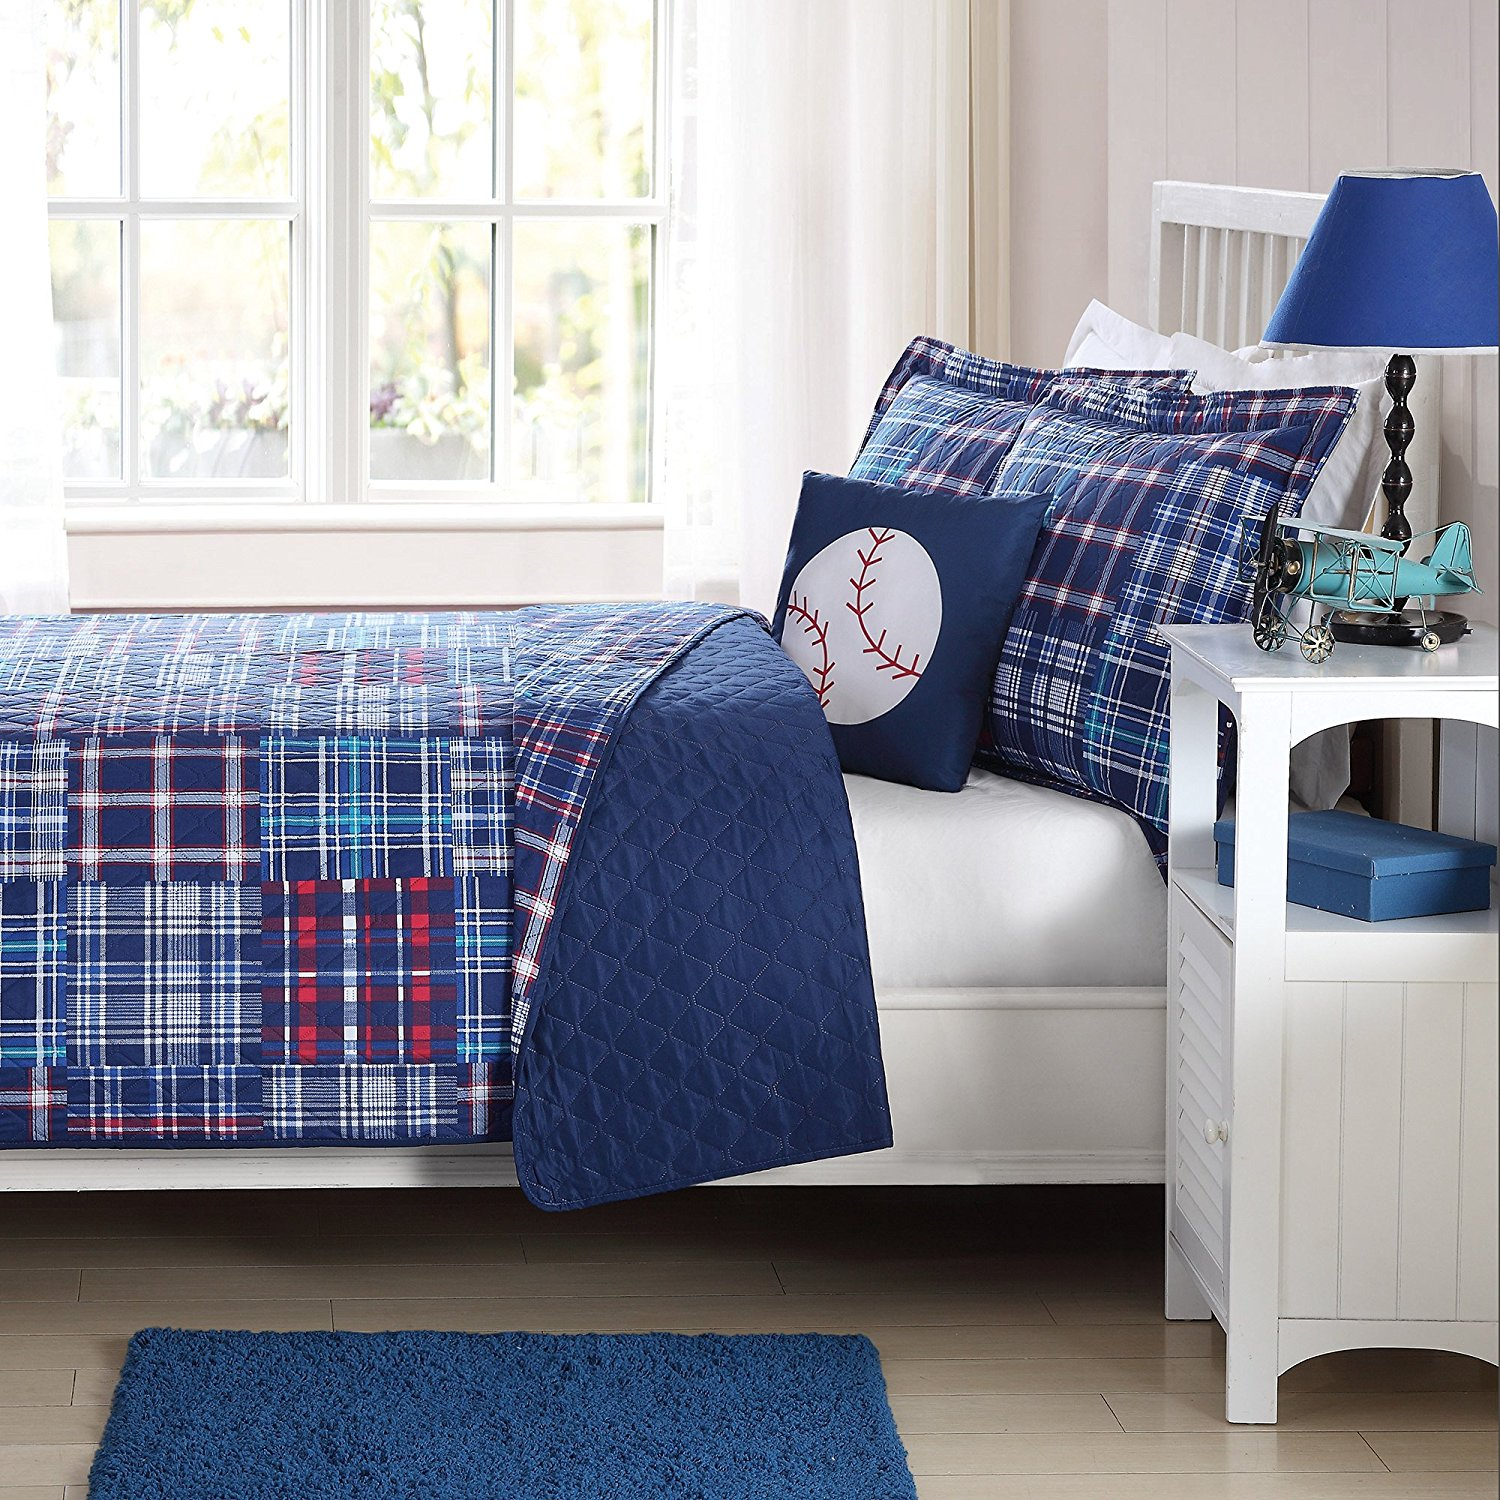 MI 3 Piece Blue Kids Plaid Twin Quilt Set, Baseball Theme Pillow Cabin Lodge Checkered Pattern Bedding,Lumberjack Rugby Stripe Tartan Madras Patchwork Horizontal Vertical Striped Squares, Microfiber